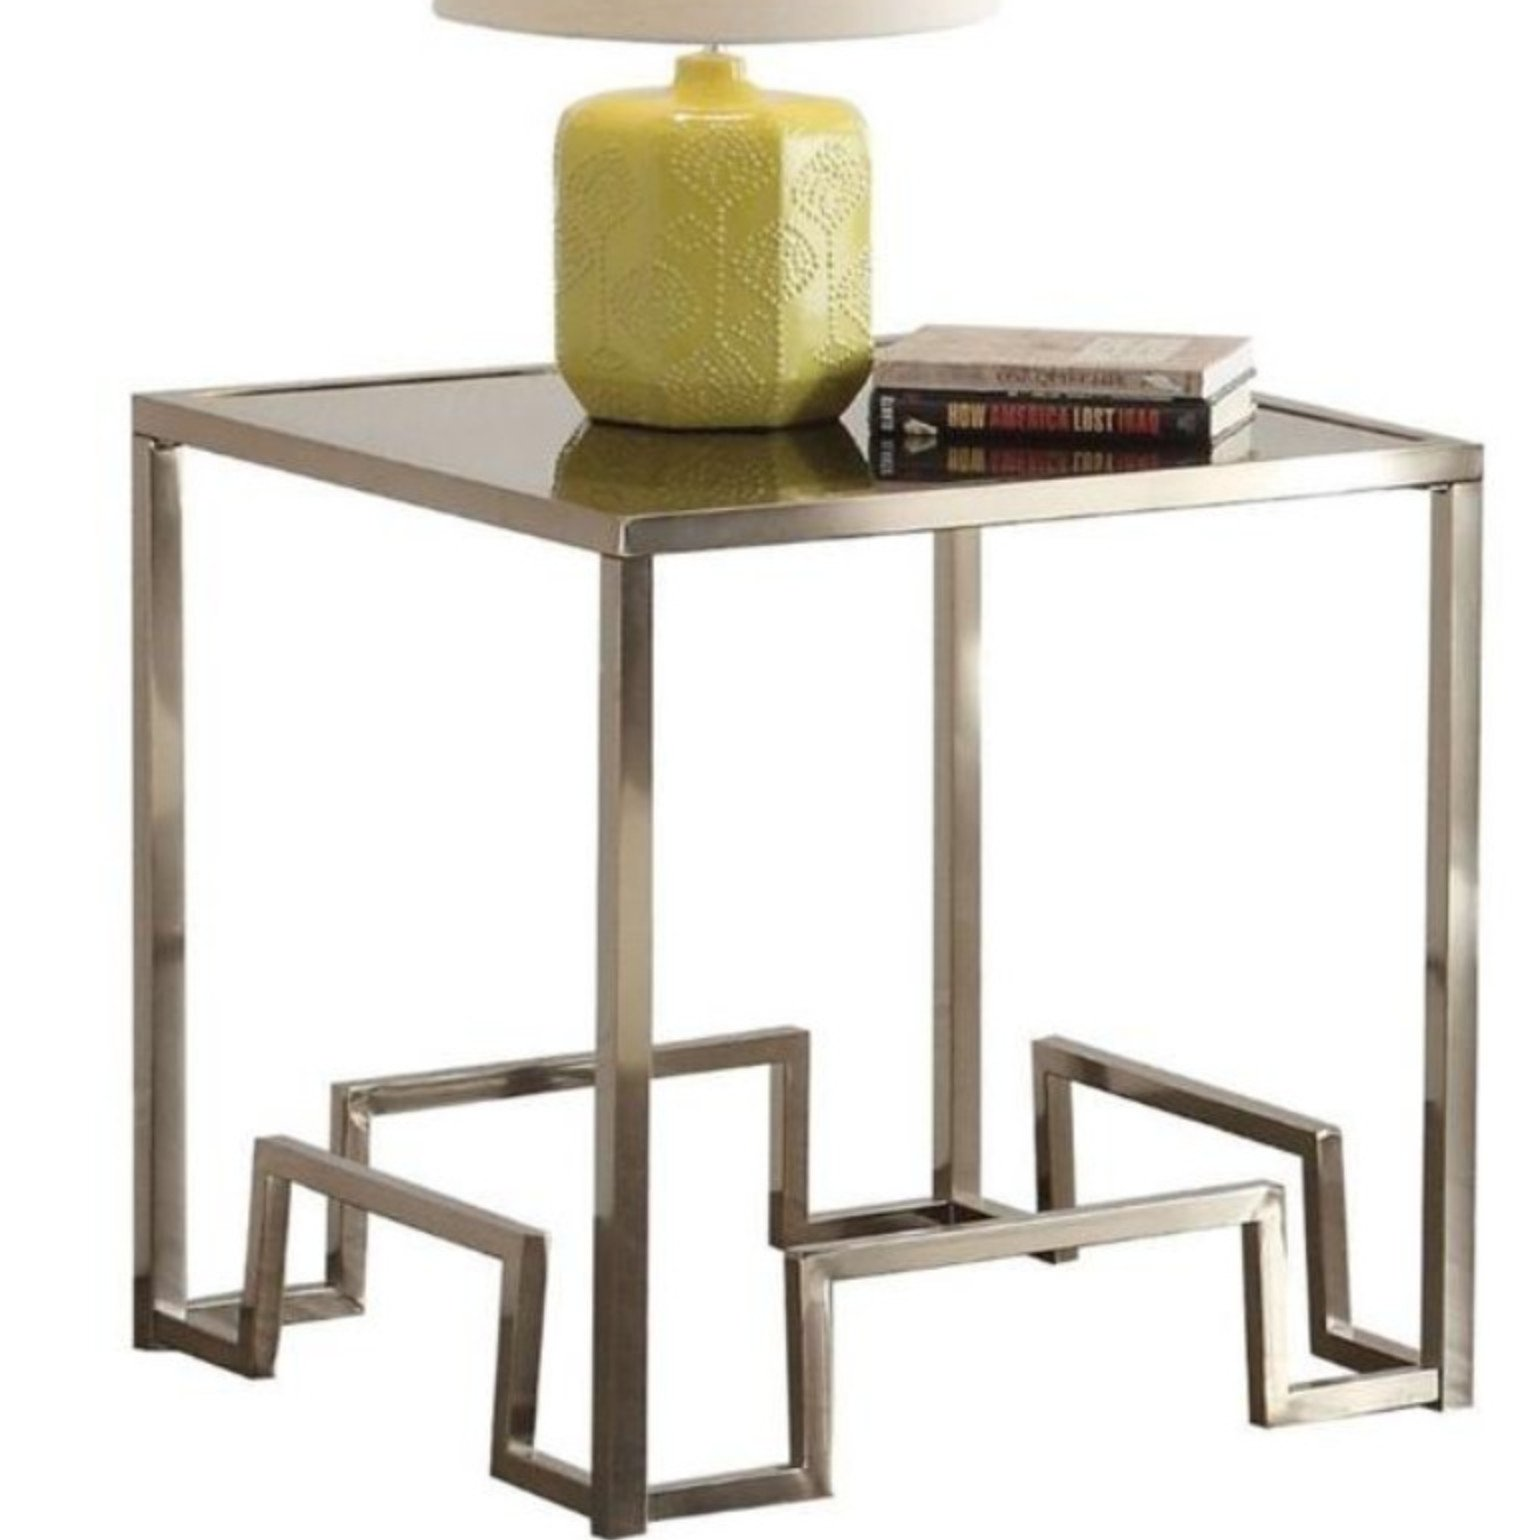 orren ellis shiver square glass end table cracked dining room small with lamp white bedside cupboard diy farmhouse what color area rug dark brown couch magazine rack side parsons